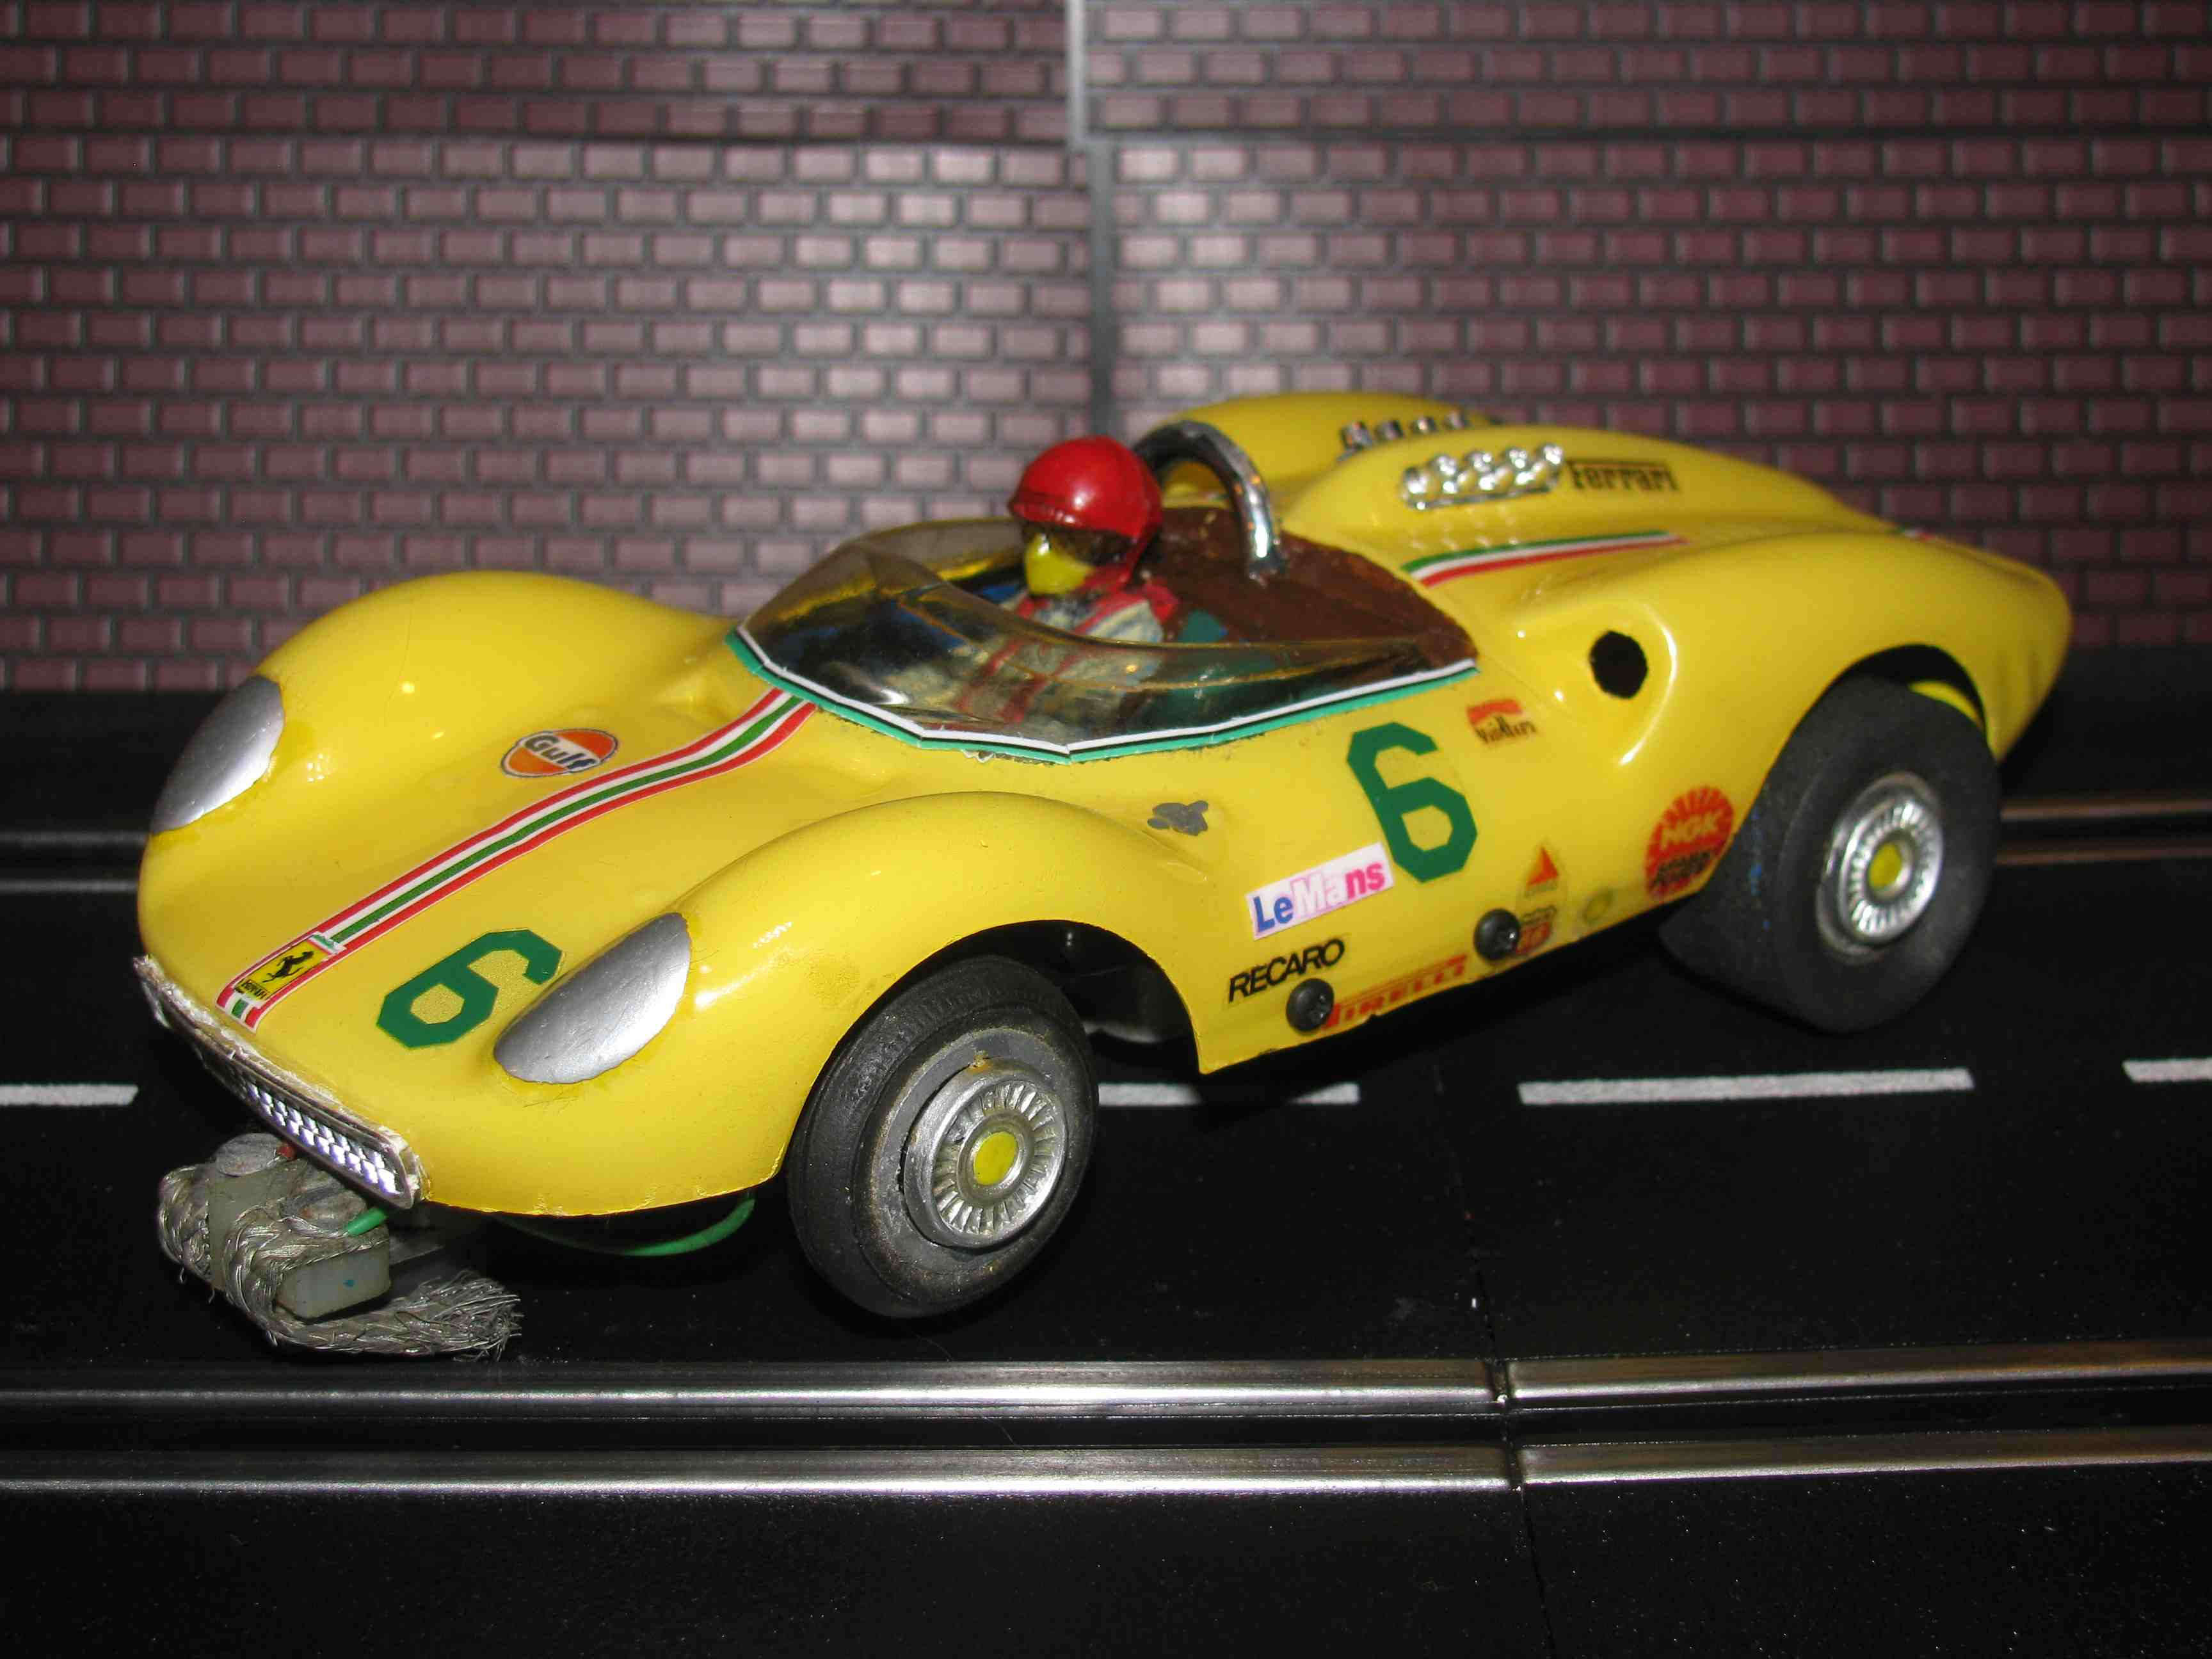 *SOLD* 1965 Ferrari Dino 166P GT Slot Car 1/24 Scale - Sun Fire Yellow - Car 6